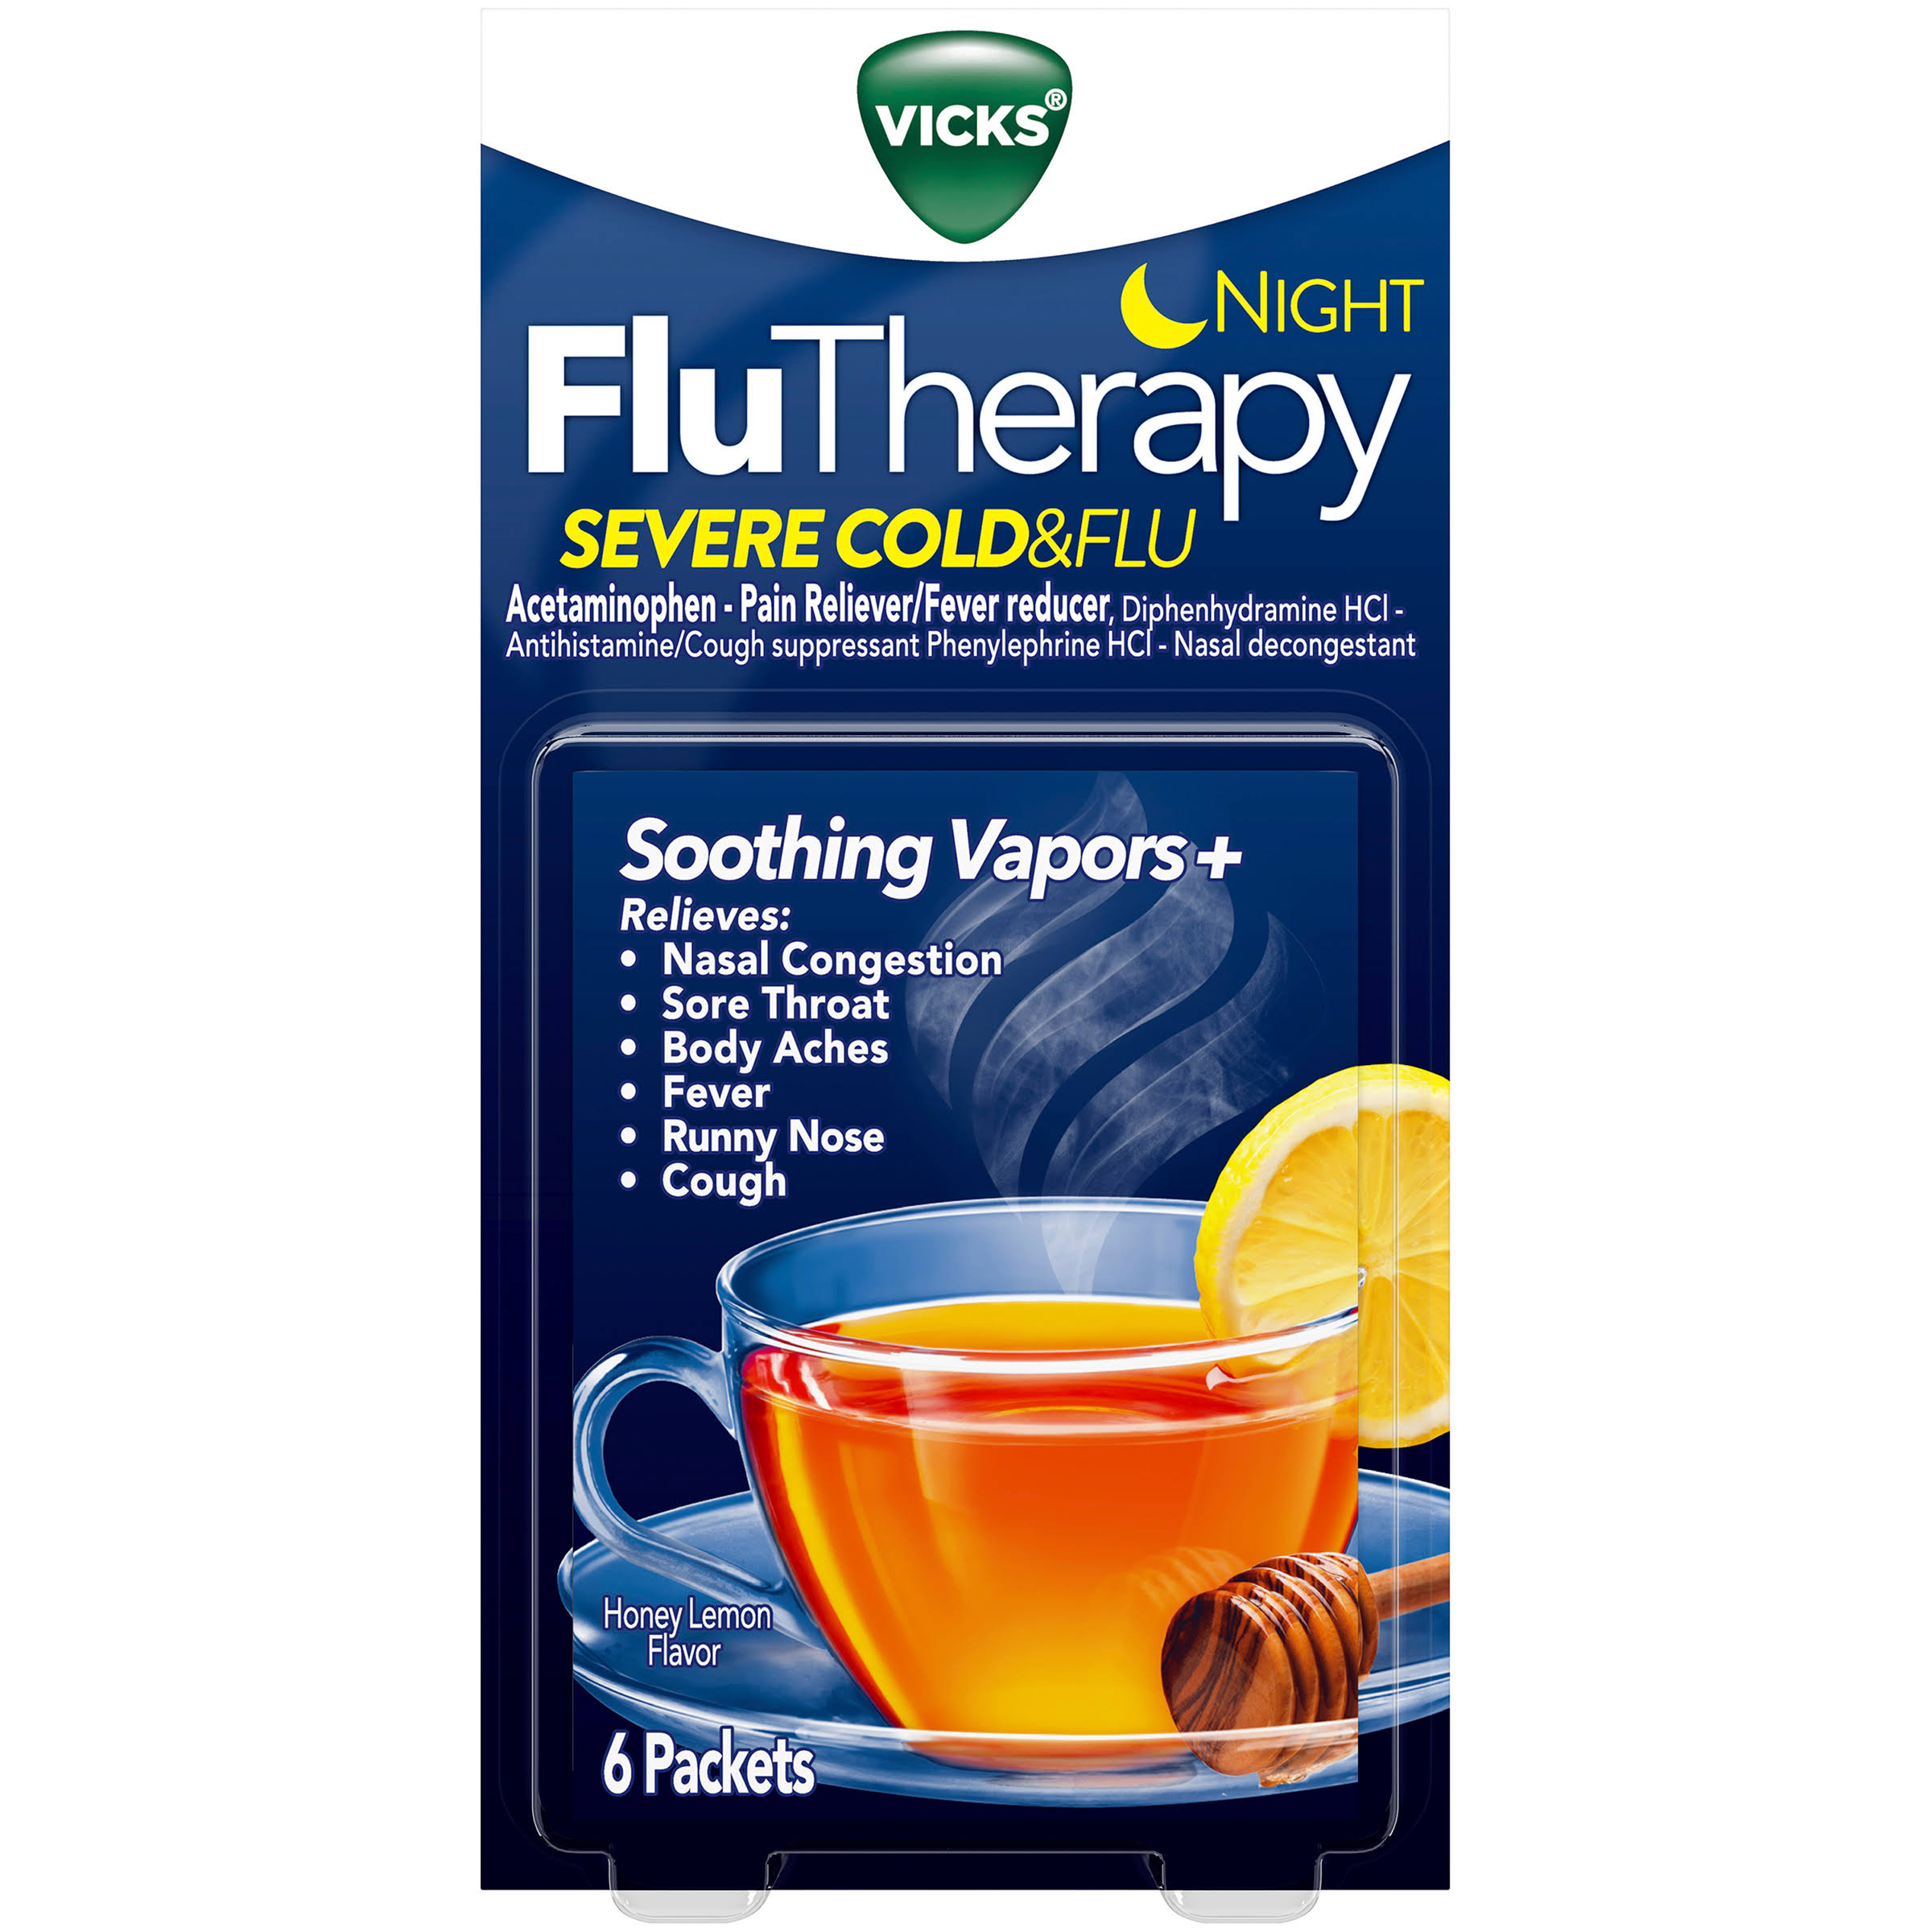 Vicks Flu Therapy, Severe Cold & Flu, Night, Honey Lemon - 6 packets